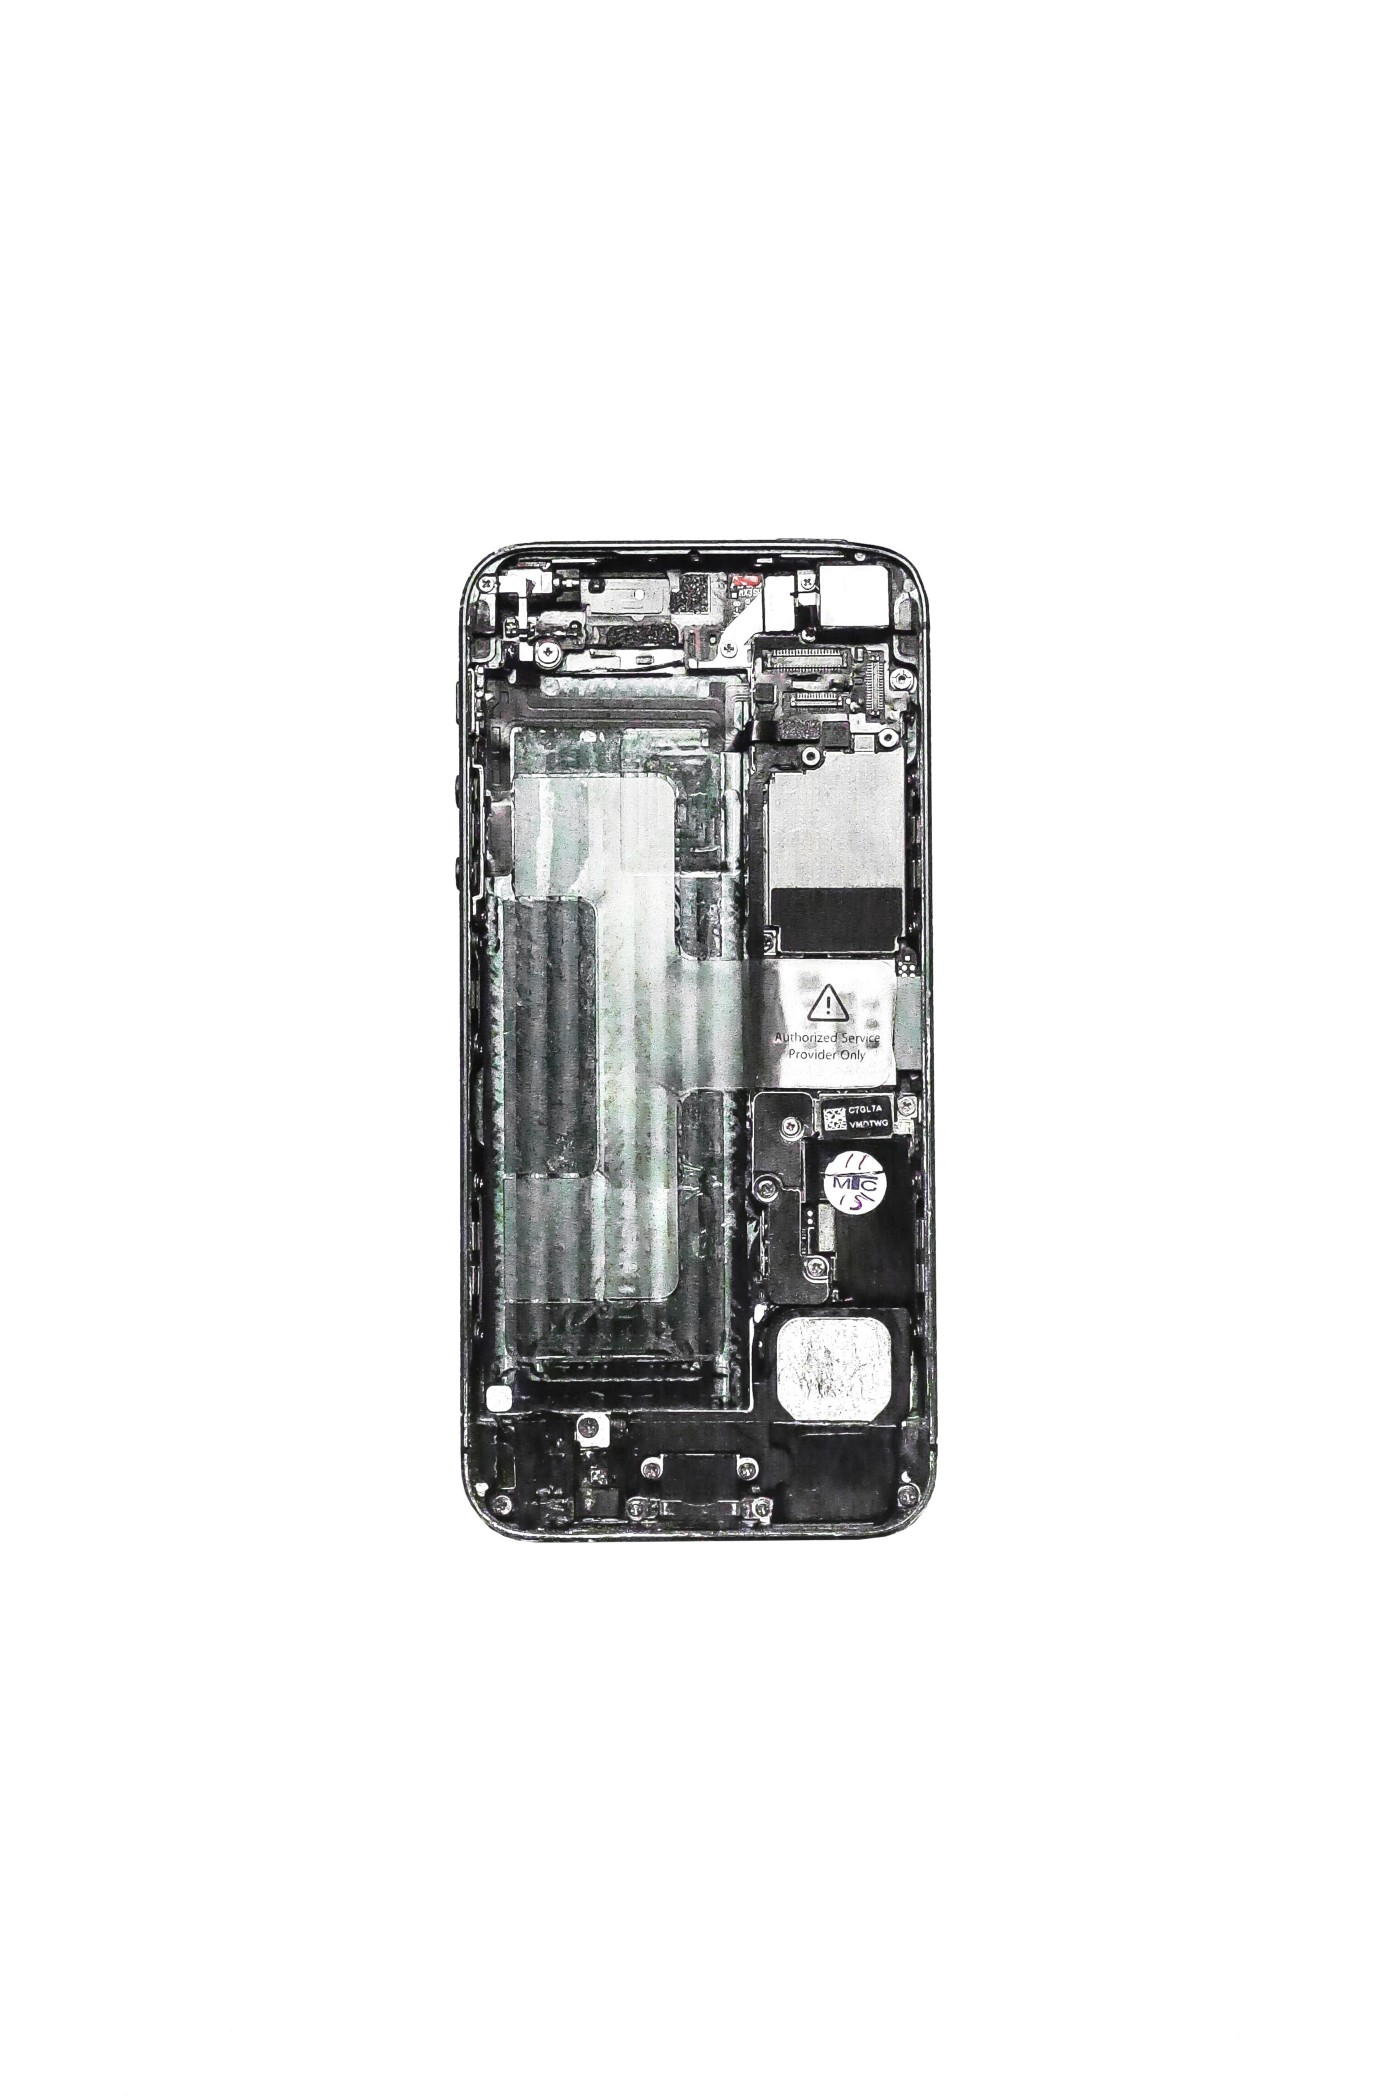 Iphone,Back of an Iphone,pieces,hardware,phone hardware